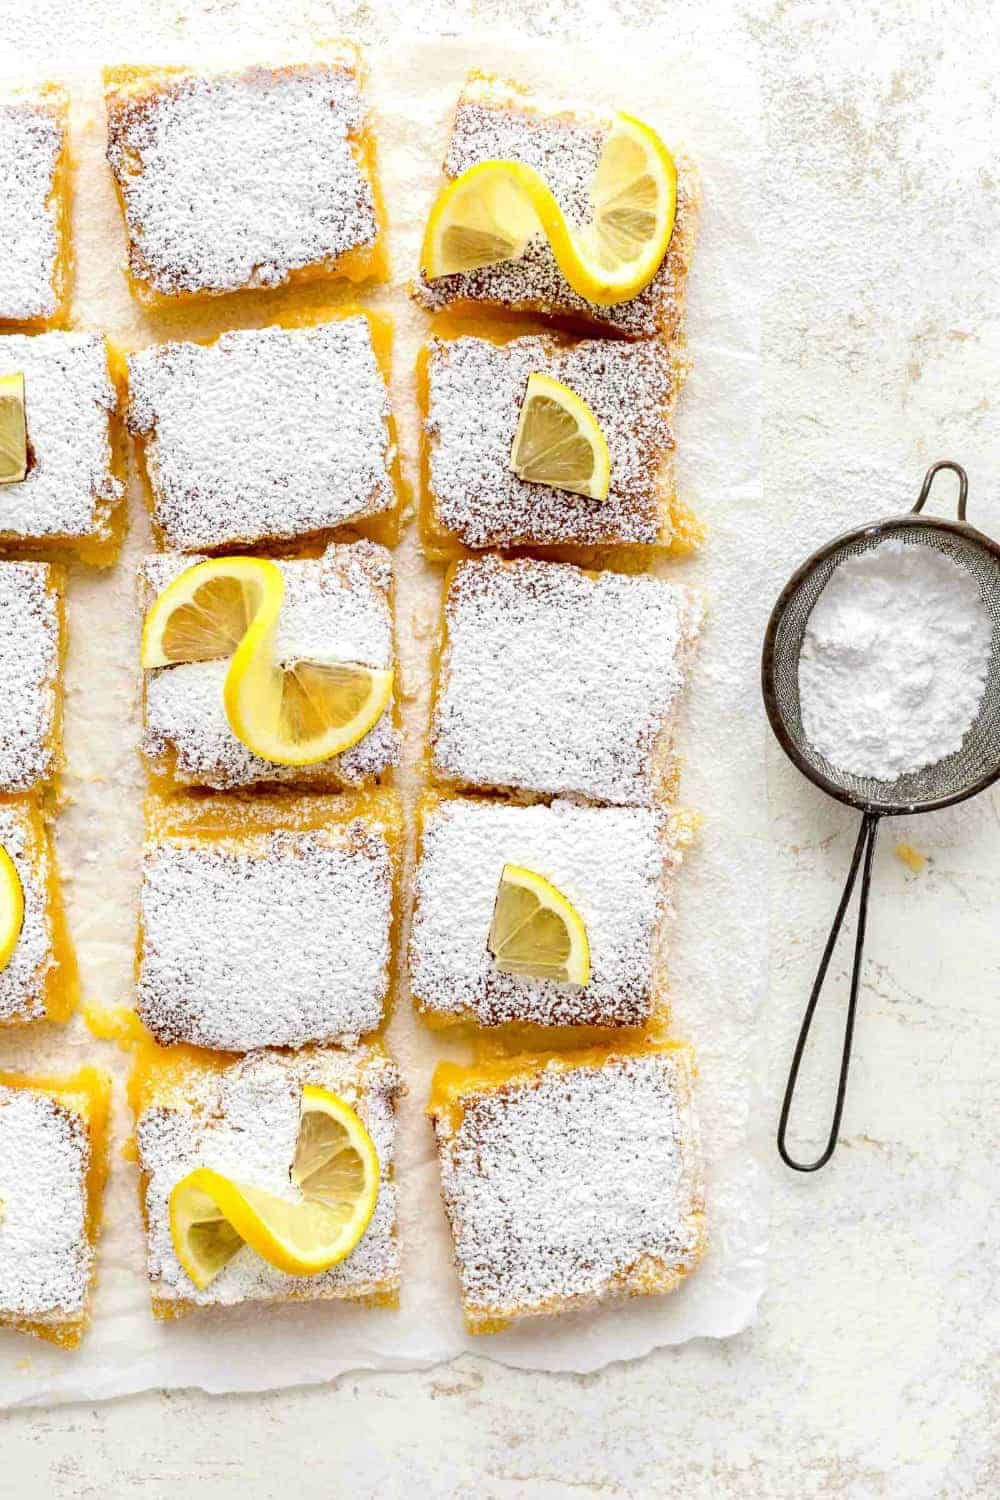 Overhead view of sliced homemade lemon bars next to a duster filled with powdered sugar